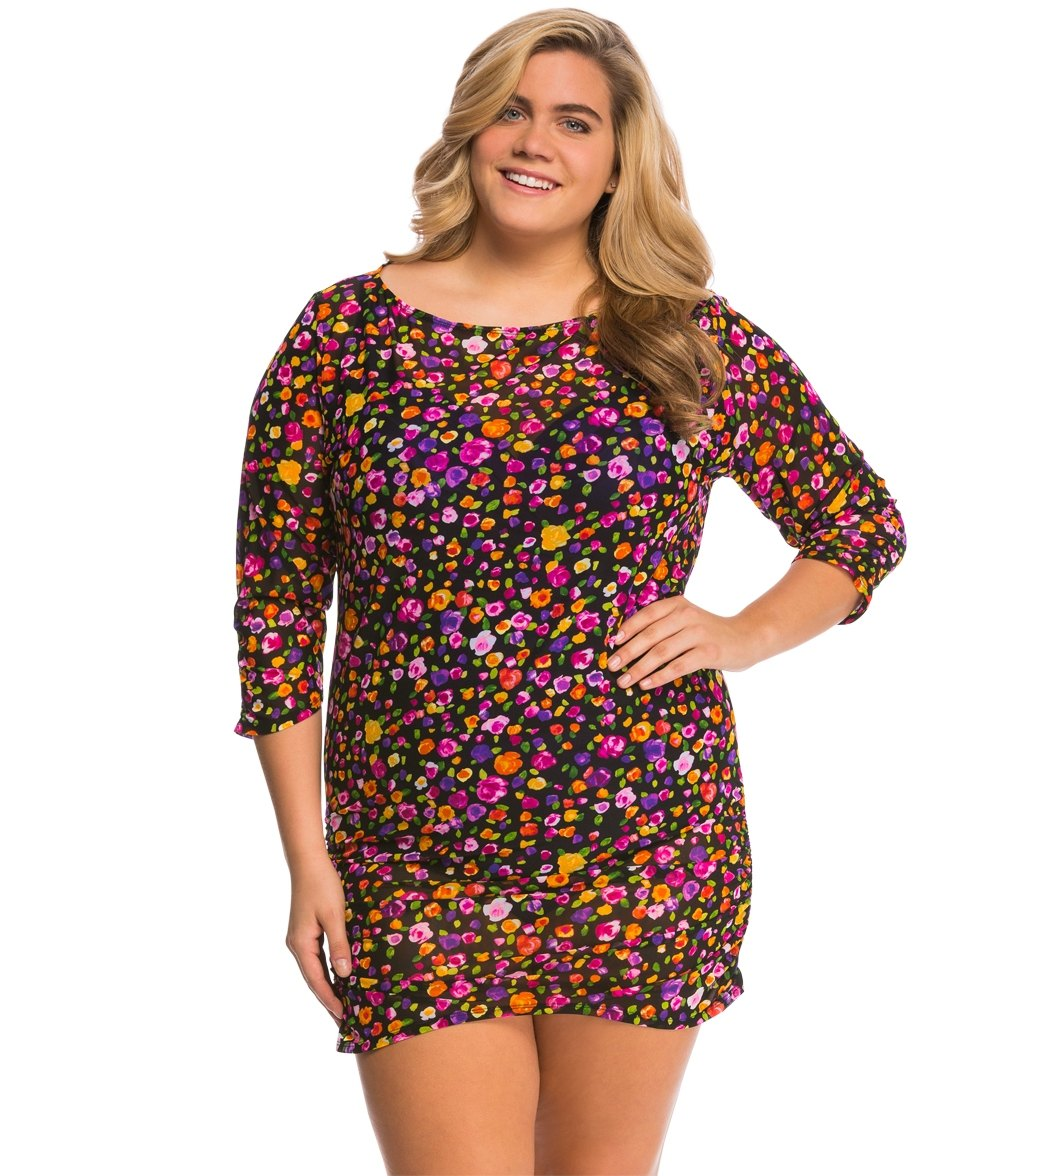 ca4202aa29 Anne Cole Plus Size Rosebud Mesh Cover Up Tunic at SwimOutlet.com - Free  Shipping